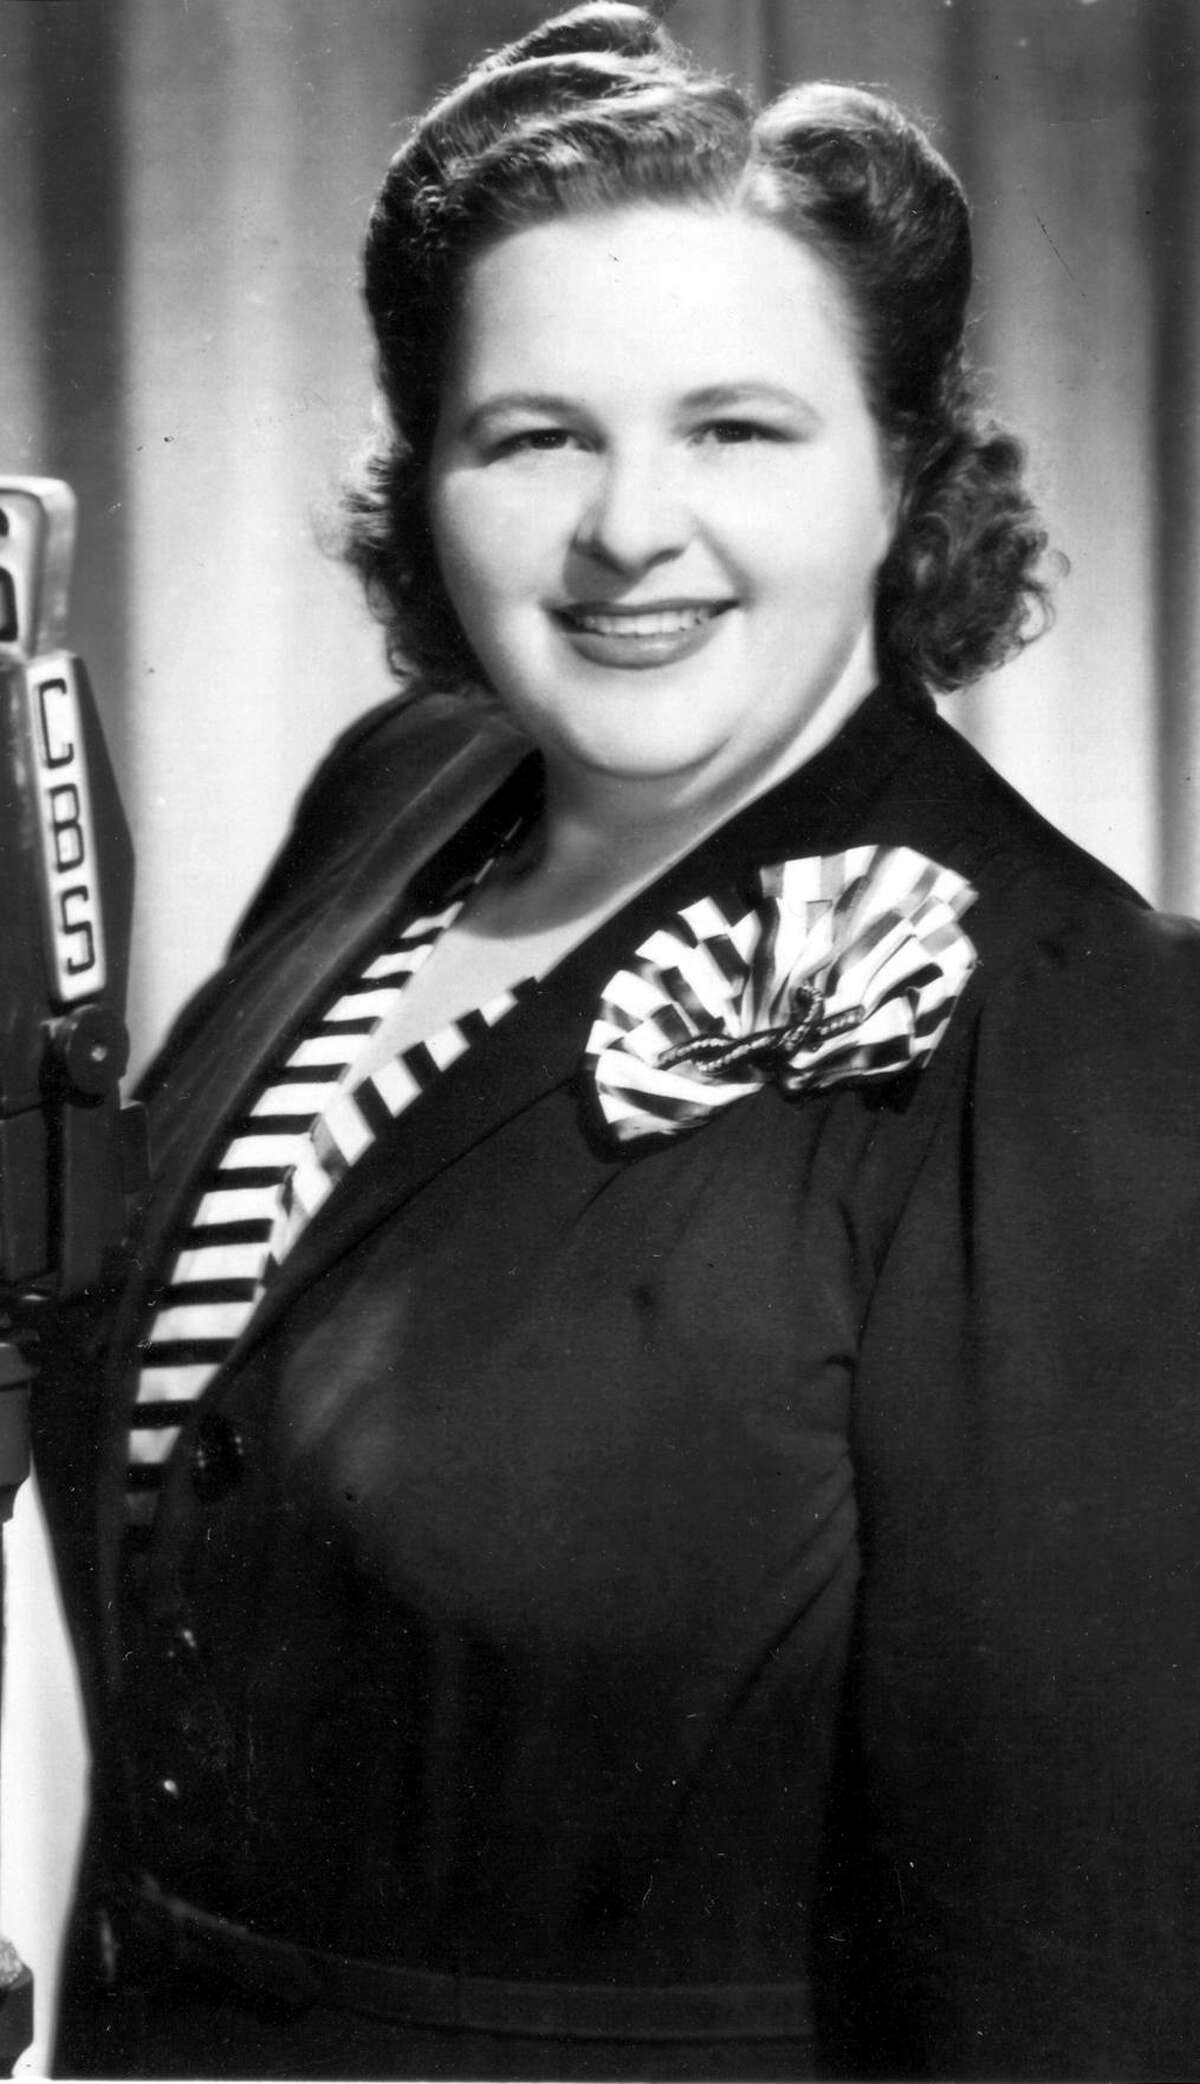 Singer Kate Smith, known for her rendition of